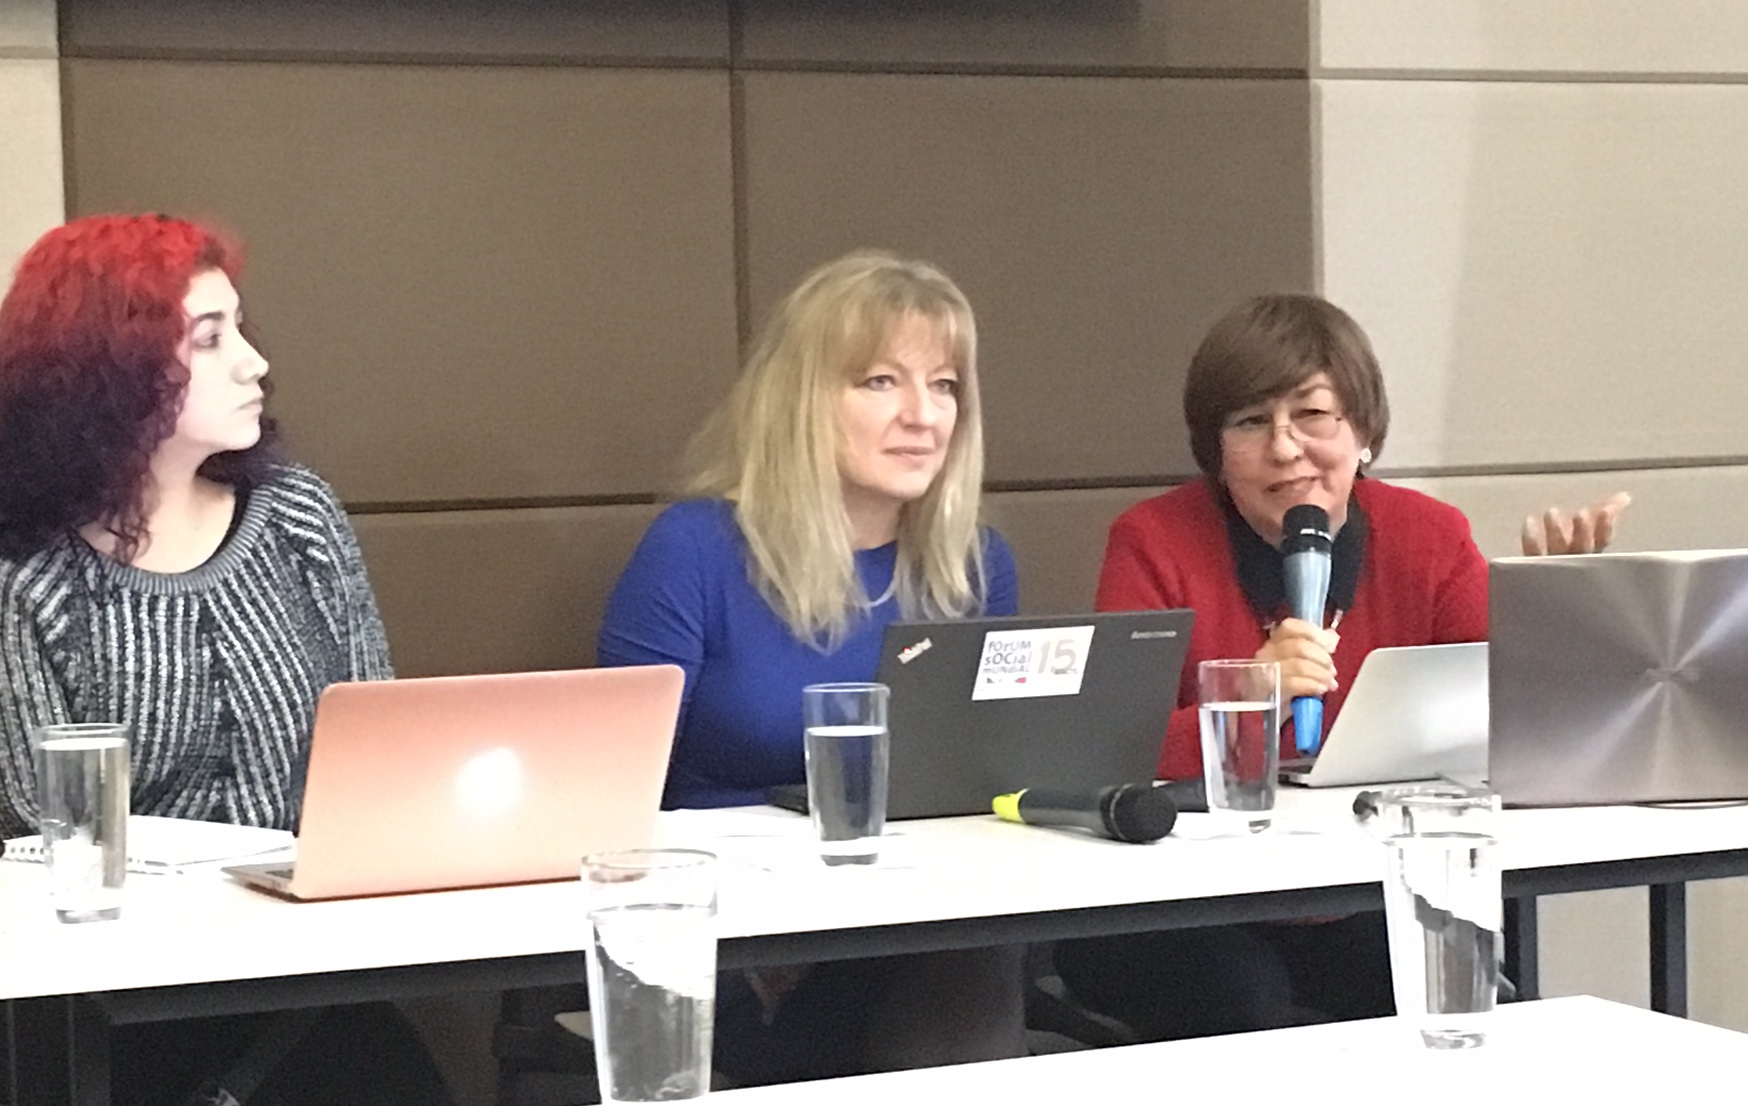 Photo: Katarina Popović, ICAE and Madeleine Zuniga, CLADE, speaking on behalf of Academia and Education Stakeholder Group at the UN DESA Expert meeting in Bogota